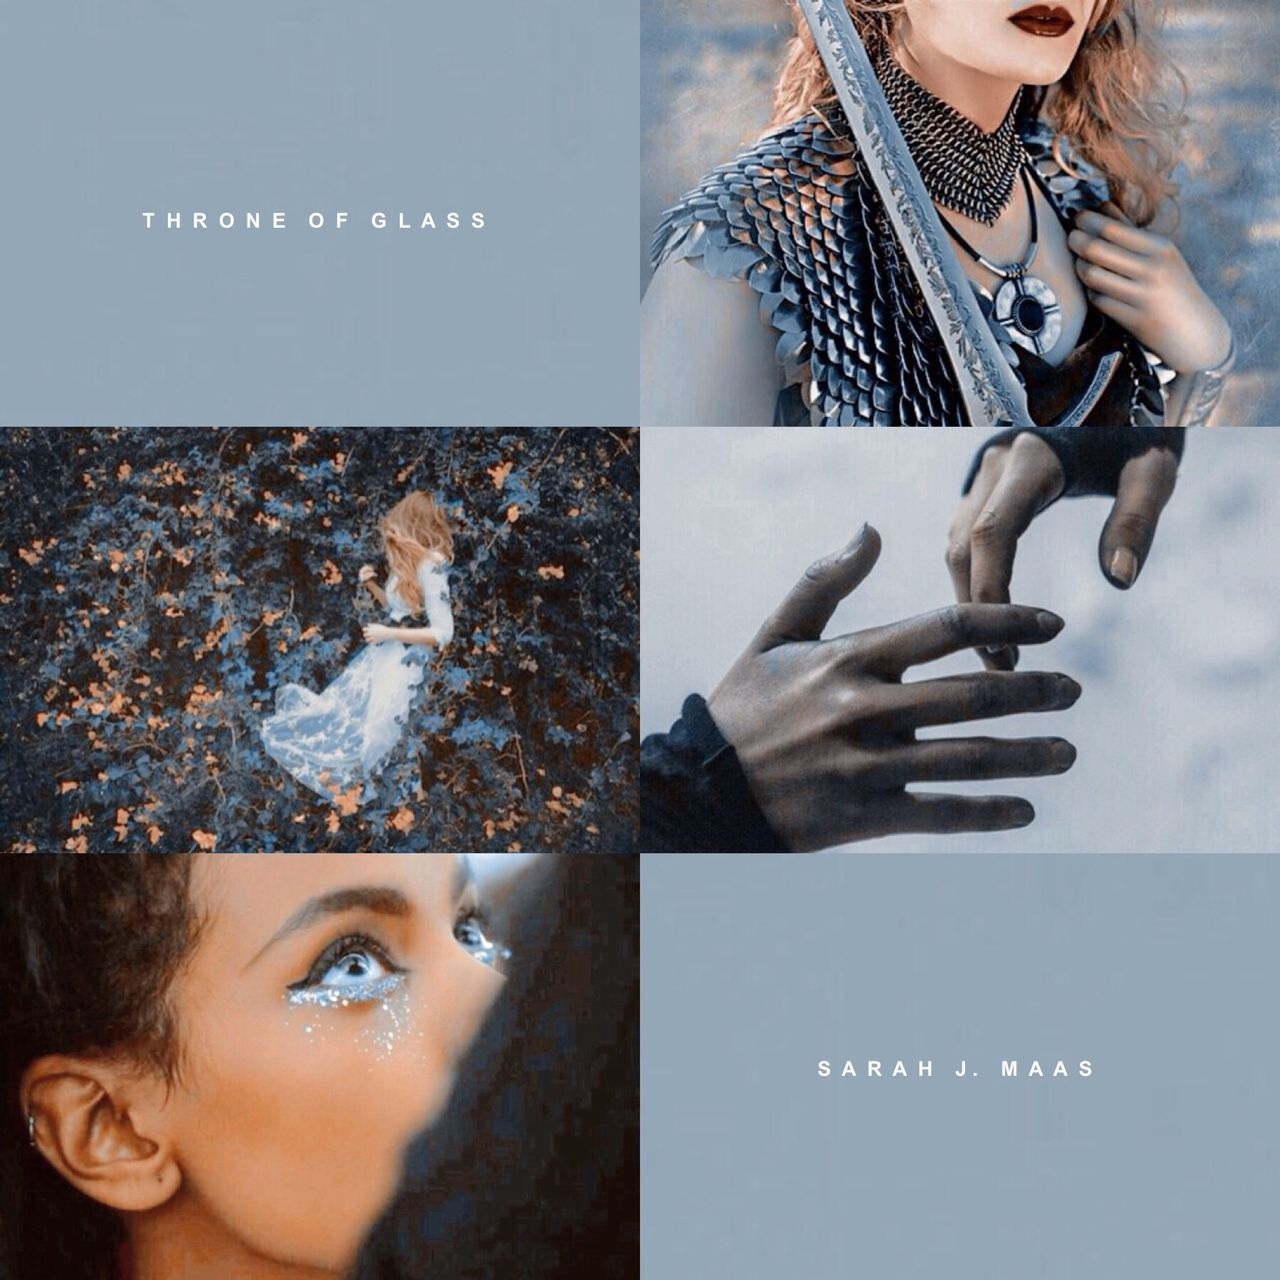 "throne of glass series by sarah j. maas : throne of glass """"Nothing is a coincidence. Everything has a purpose. You were meant t o c o m e t o t h i s c a s t l e , just as you were meant t o b e a n..."